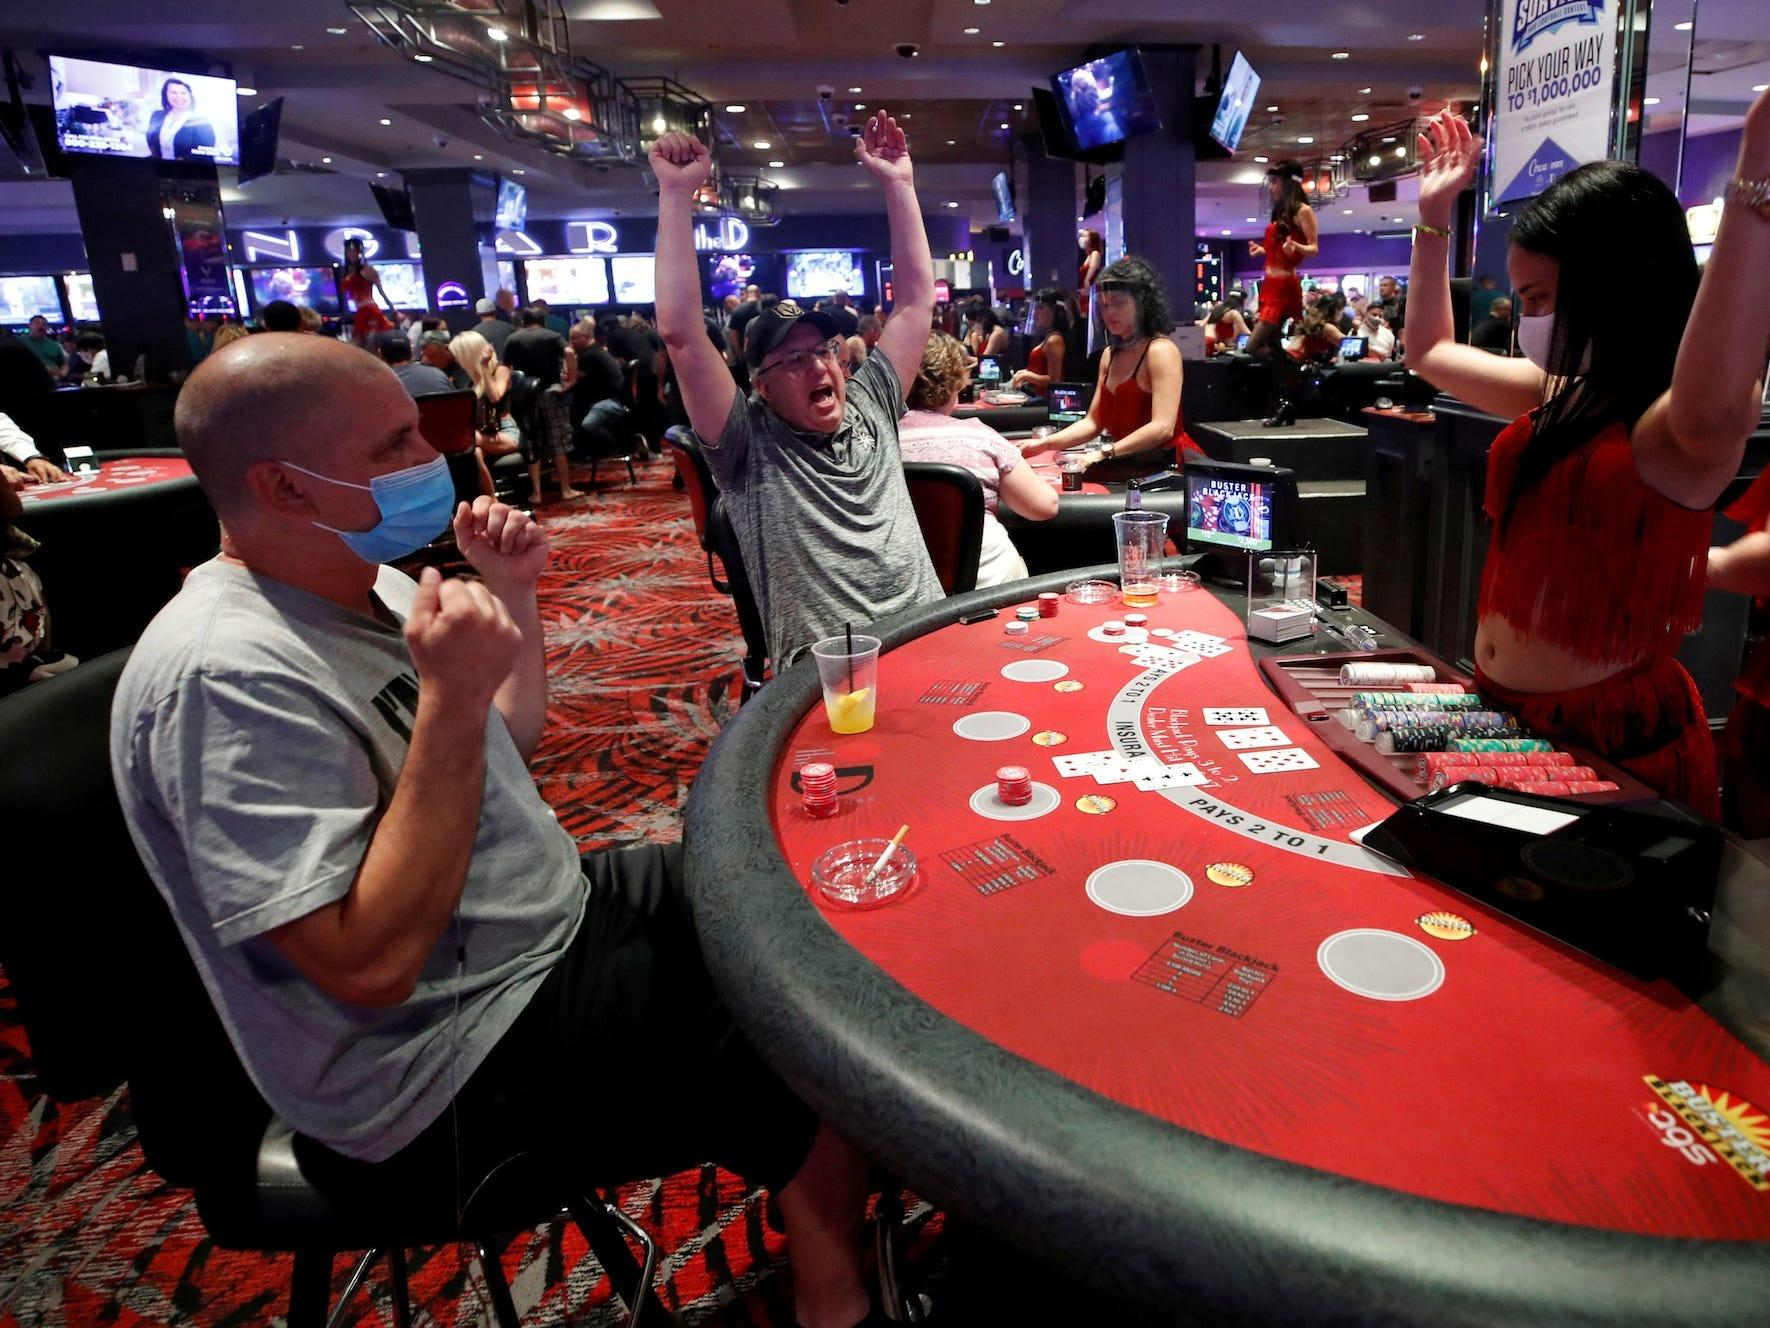 Online poker, casino games businesses triple as casinos close